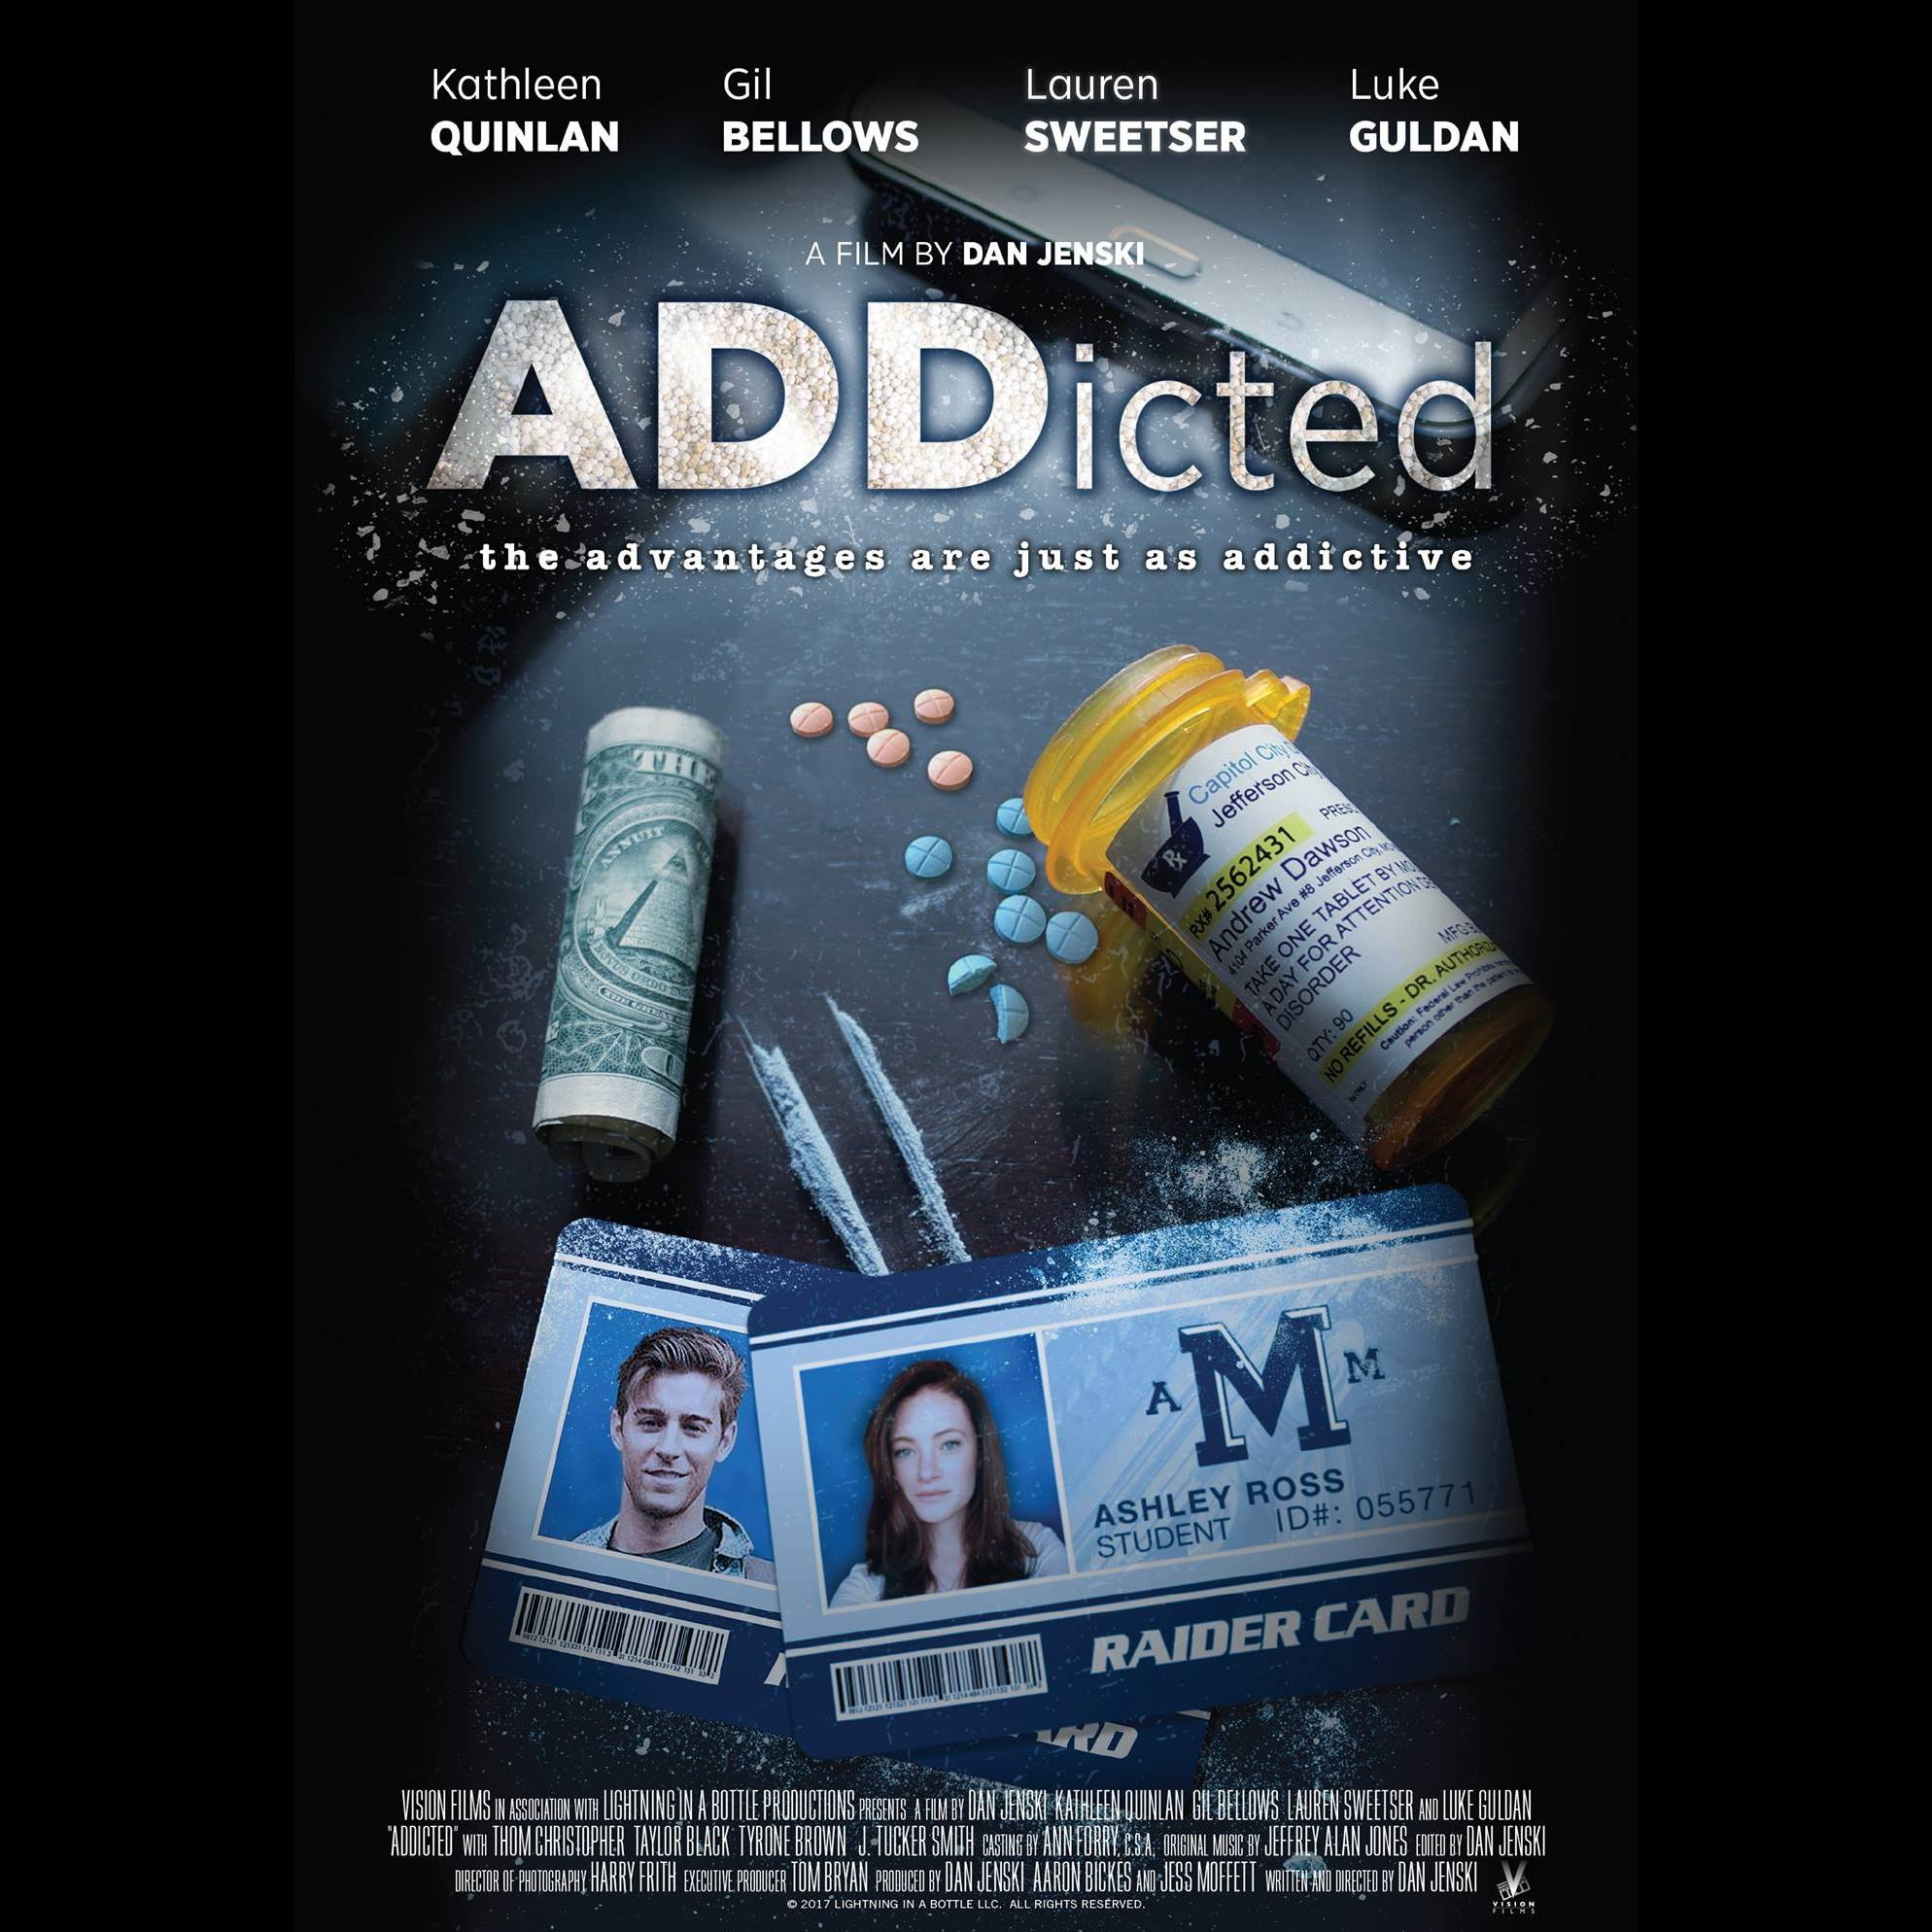 ADDicted movie